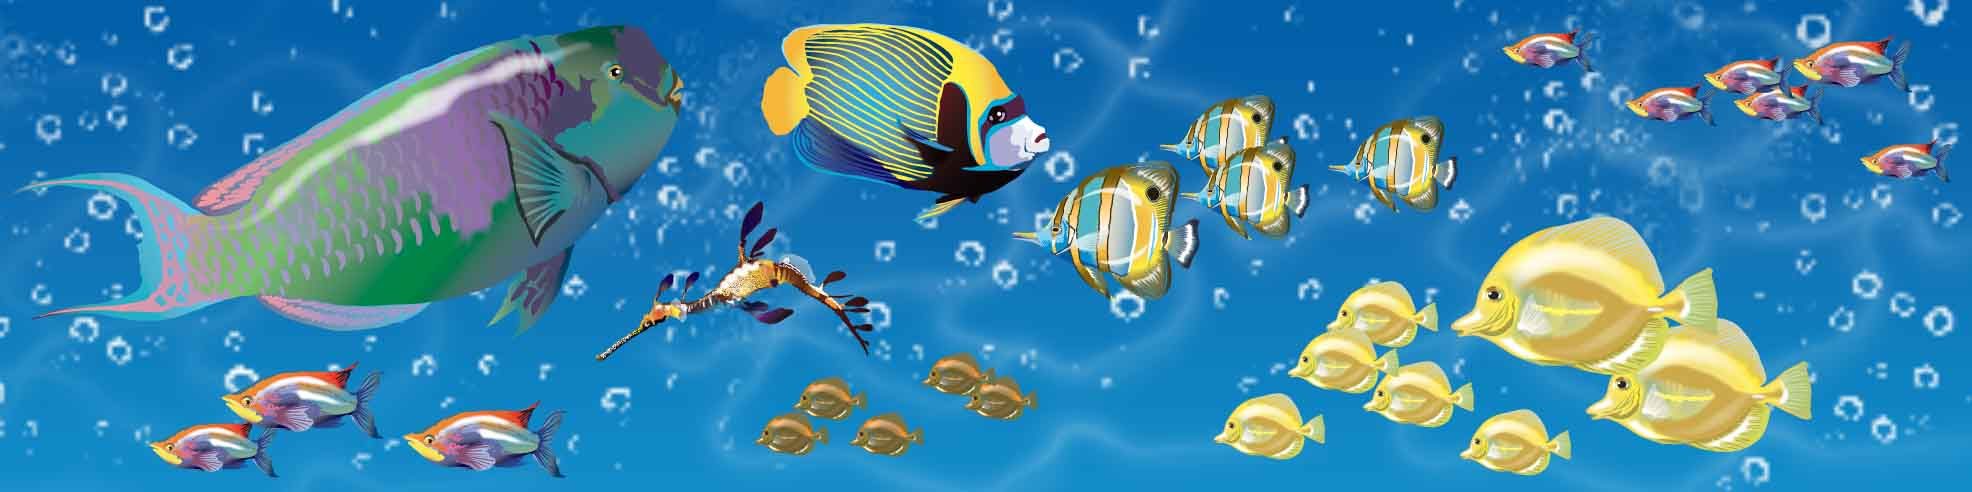 Fish in ocean clipart image transparent Free Ocean Cliparts, Download Free Clip Art, Free Clip Art on ... image transparent